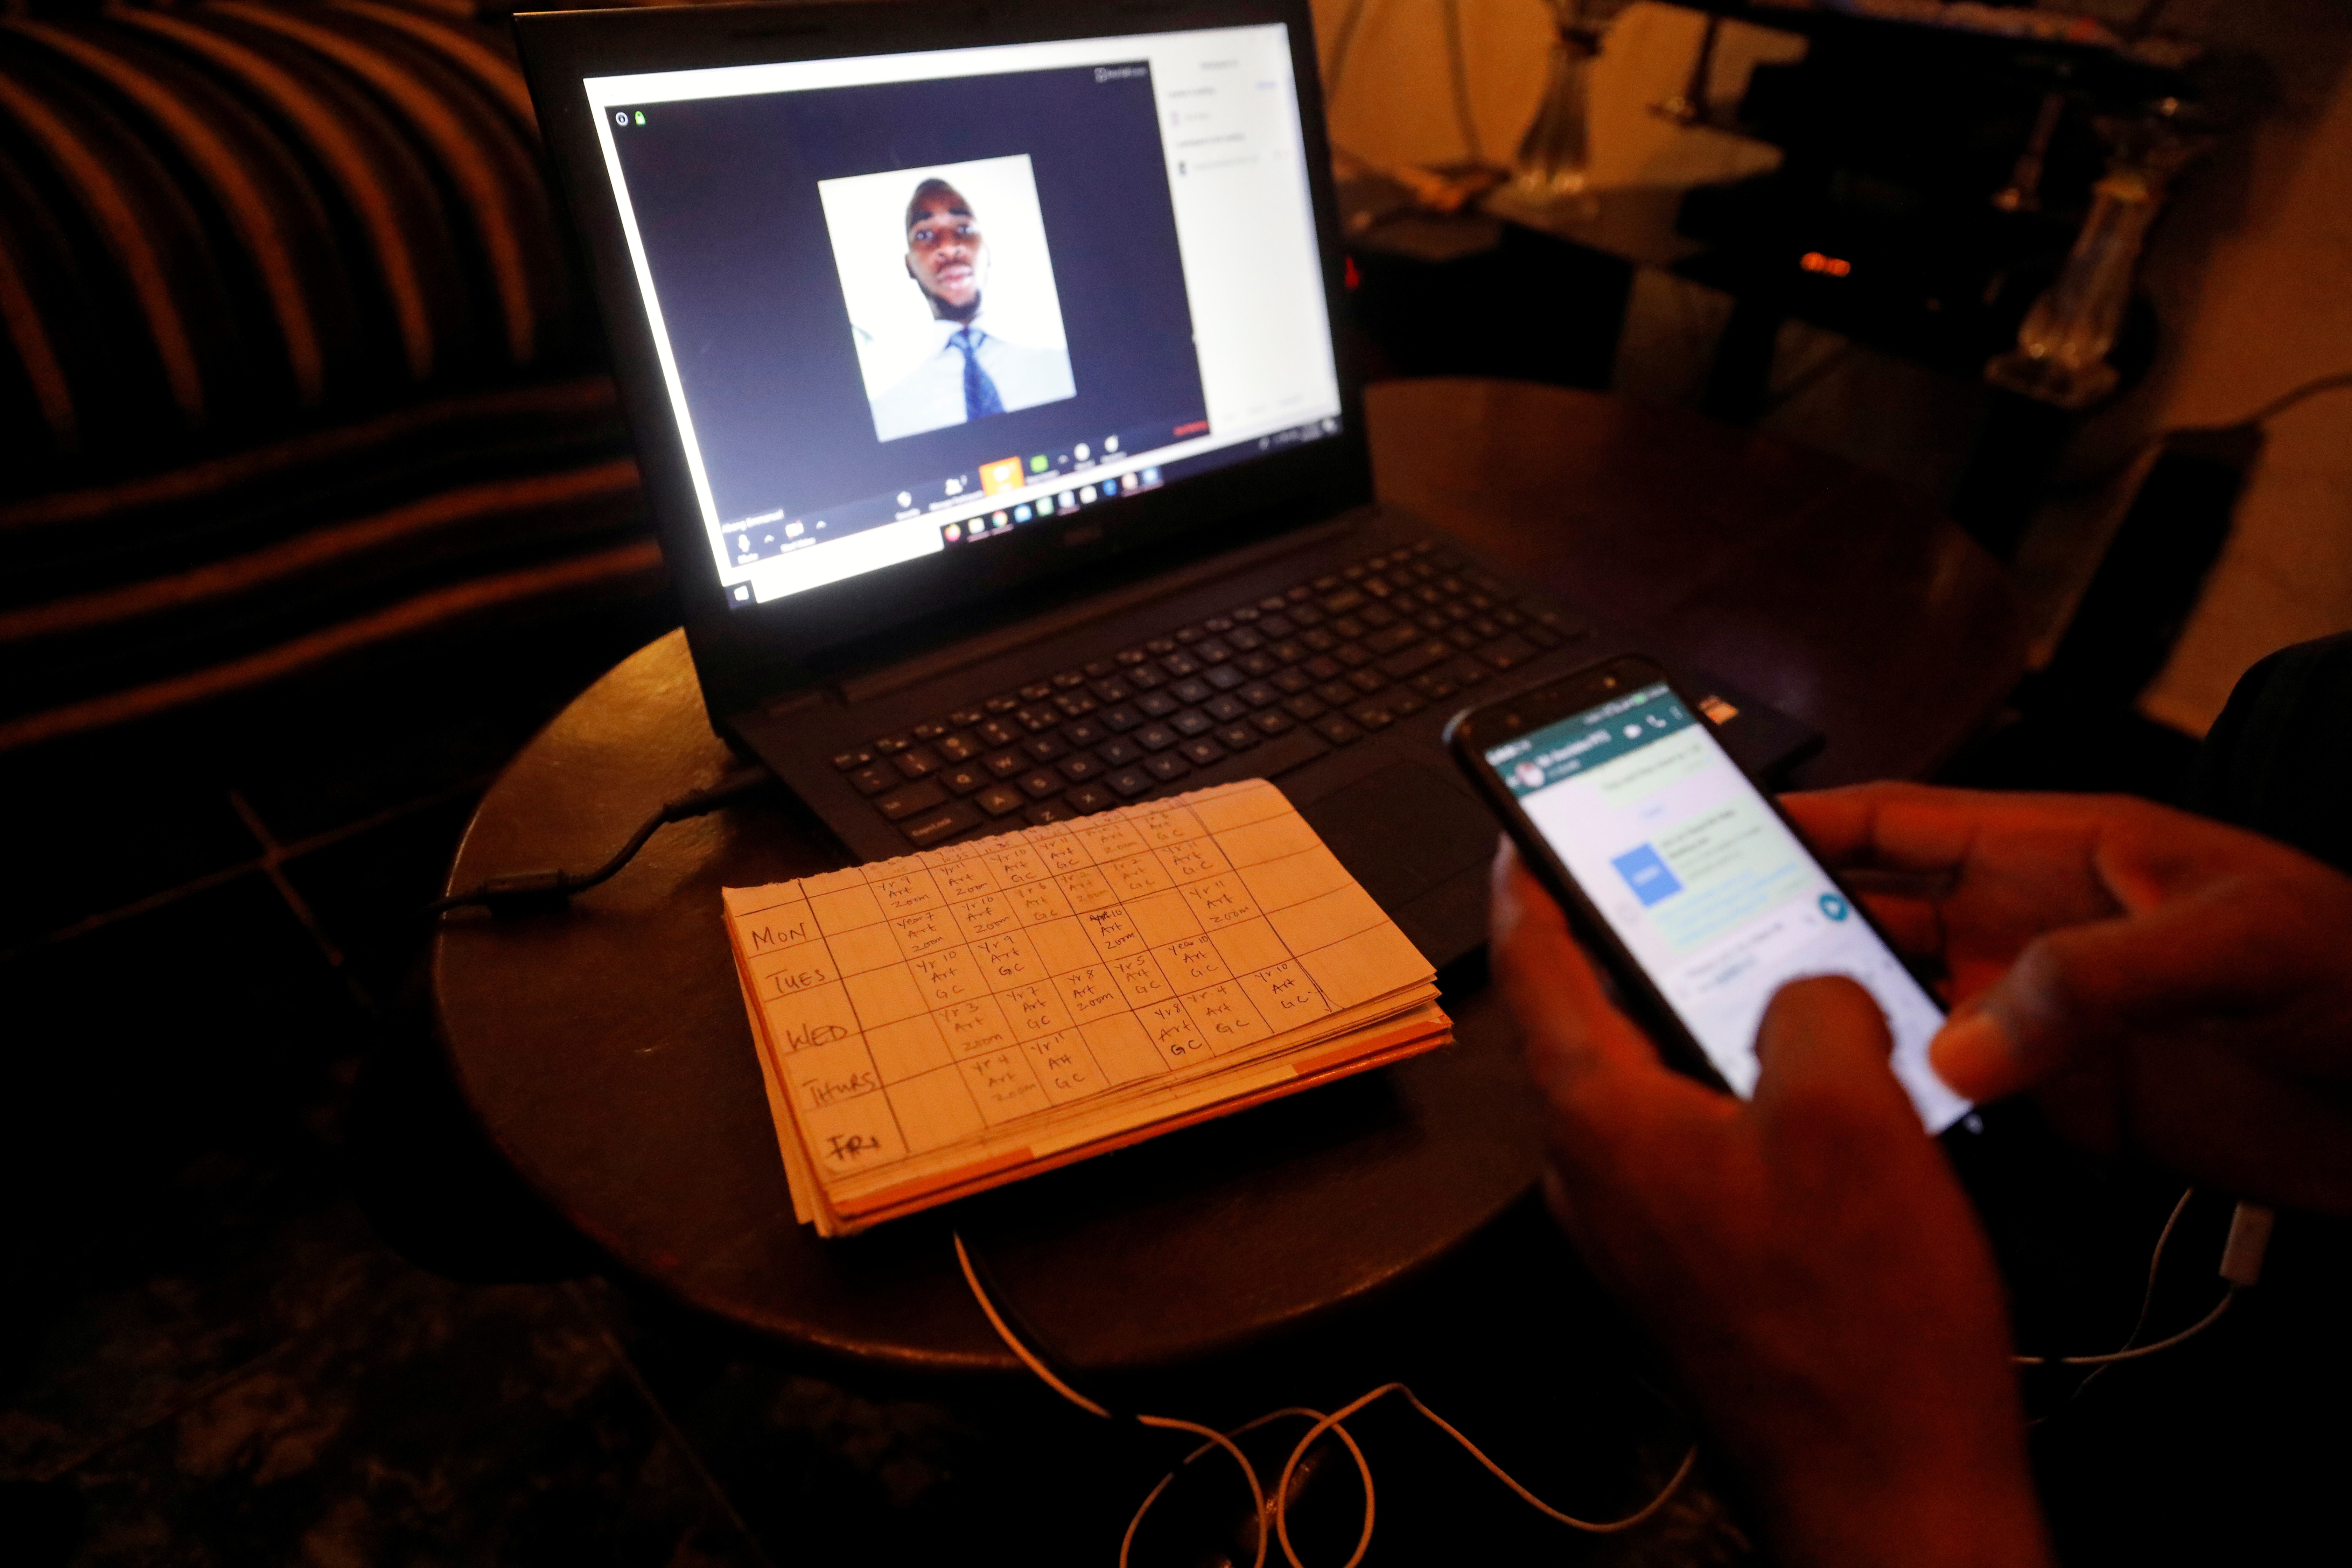 Nigerian teacher, Emmanuel Ntaji, types on his phone as he awaits his students to come online on the Zoom app for their e-learning class, at his home during a lockdown imposed by the authorities to limit the spread of the coronavirus disease (COVID-19) in Lagos, Nigeria April 23, 2020. Picture taken April 23, 2020. REUTERS/Temilade Adelaja - RC2NFG90ZJ4L